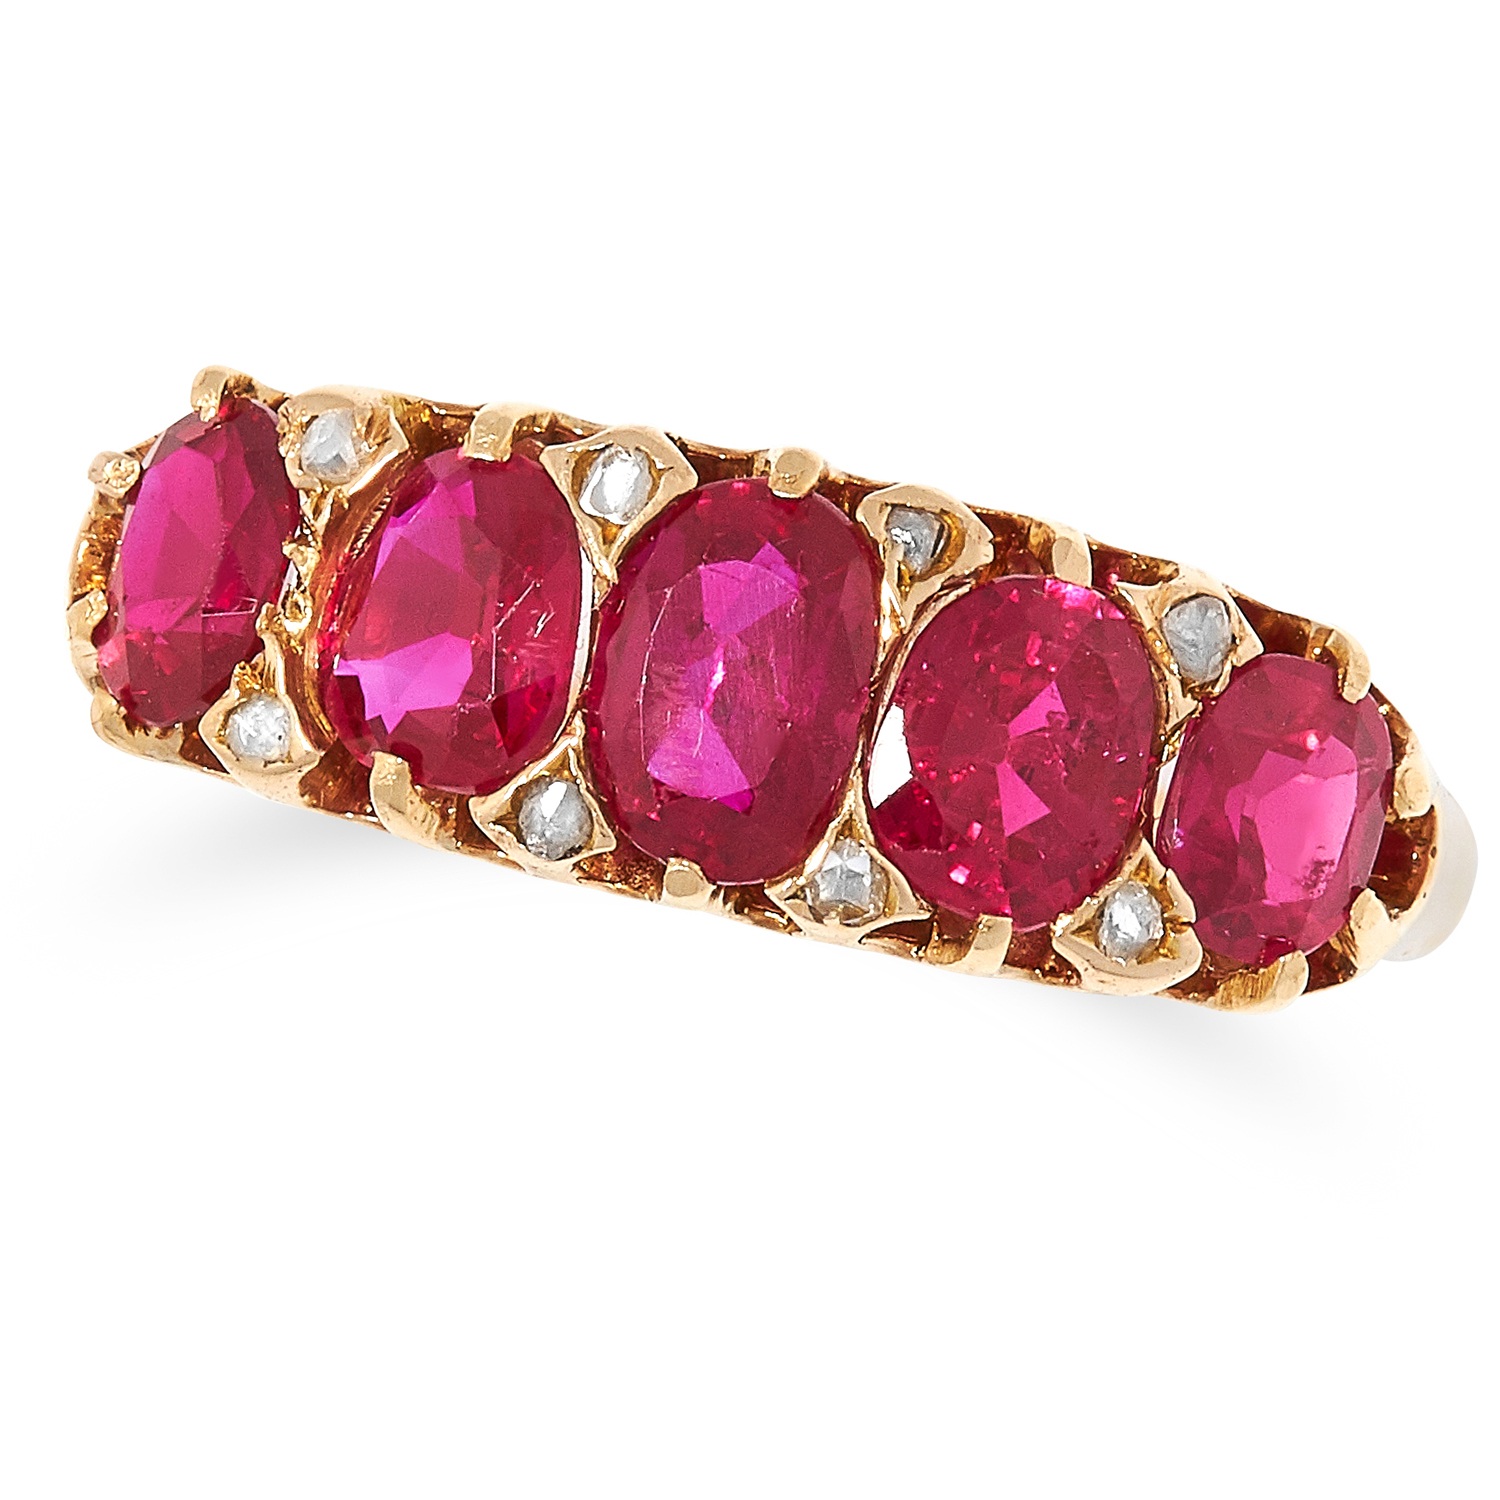 Los 9 - 1.59 CARAT BURMA NO HEAT RUBY AND DIAMOND RING set with five oval cut rubies totalling 1.59 carats